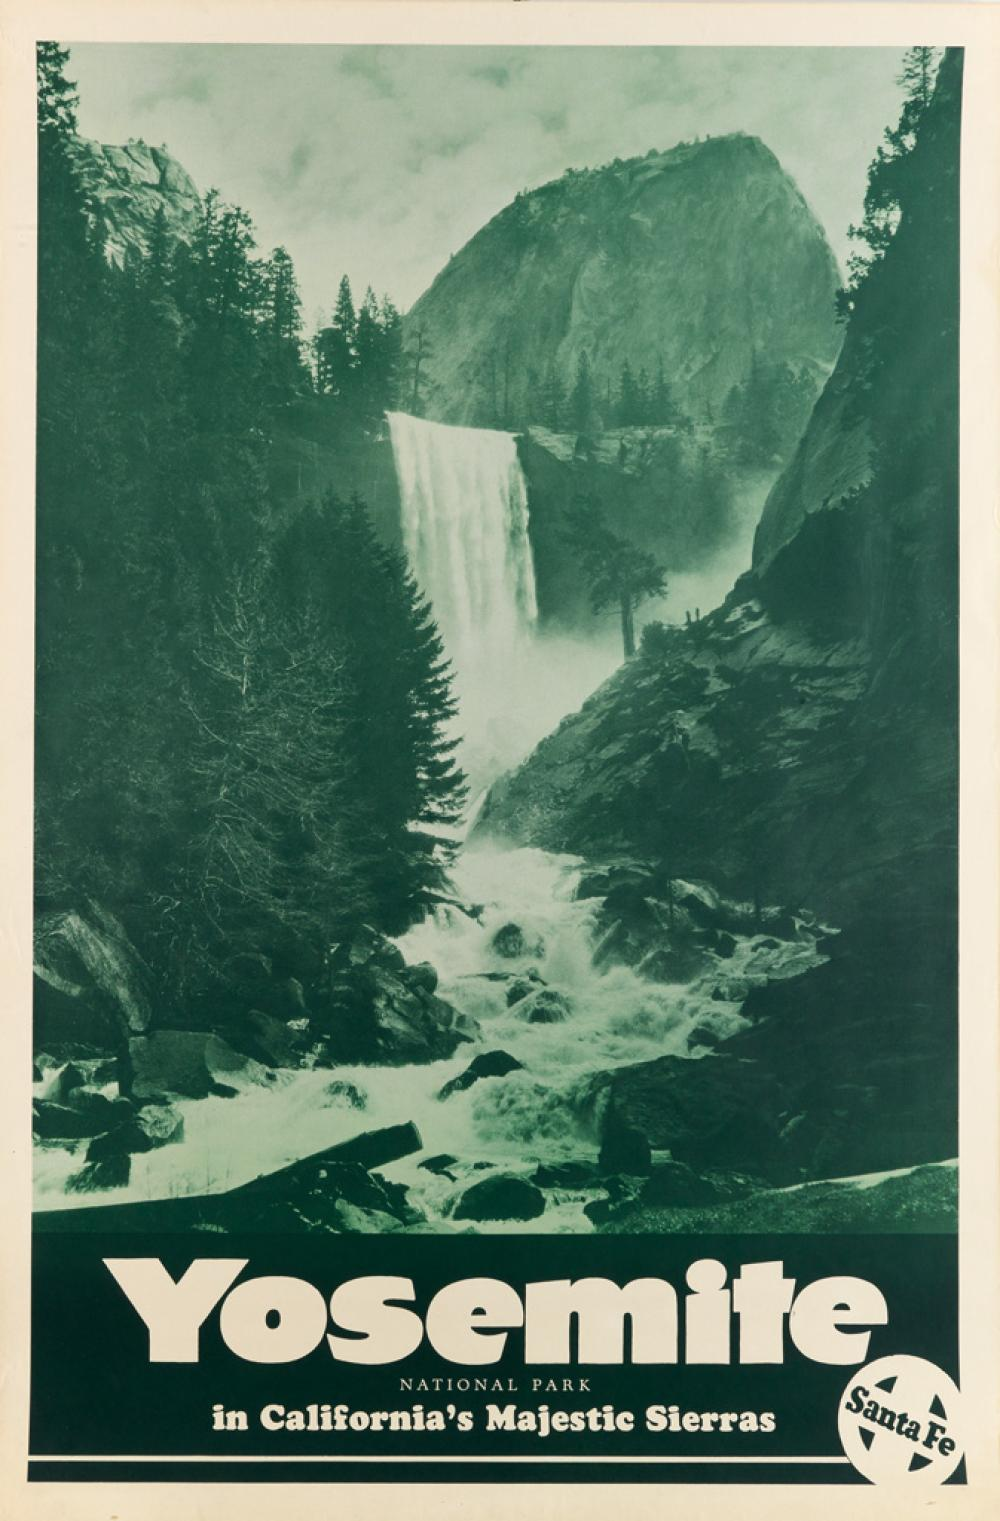 DESIGNER UNKNOWN. YOSEMITE NATIONAL PARK / IN CALIFORNIA'S MAJESTIC SIERRAS. Circa 1938. 36x24 inches, 91x61 cm.